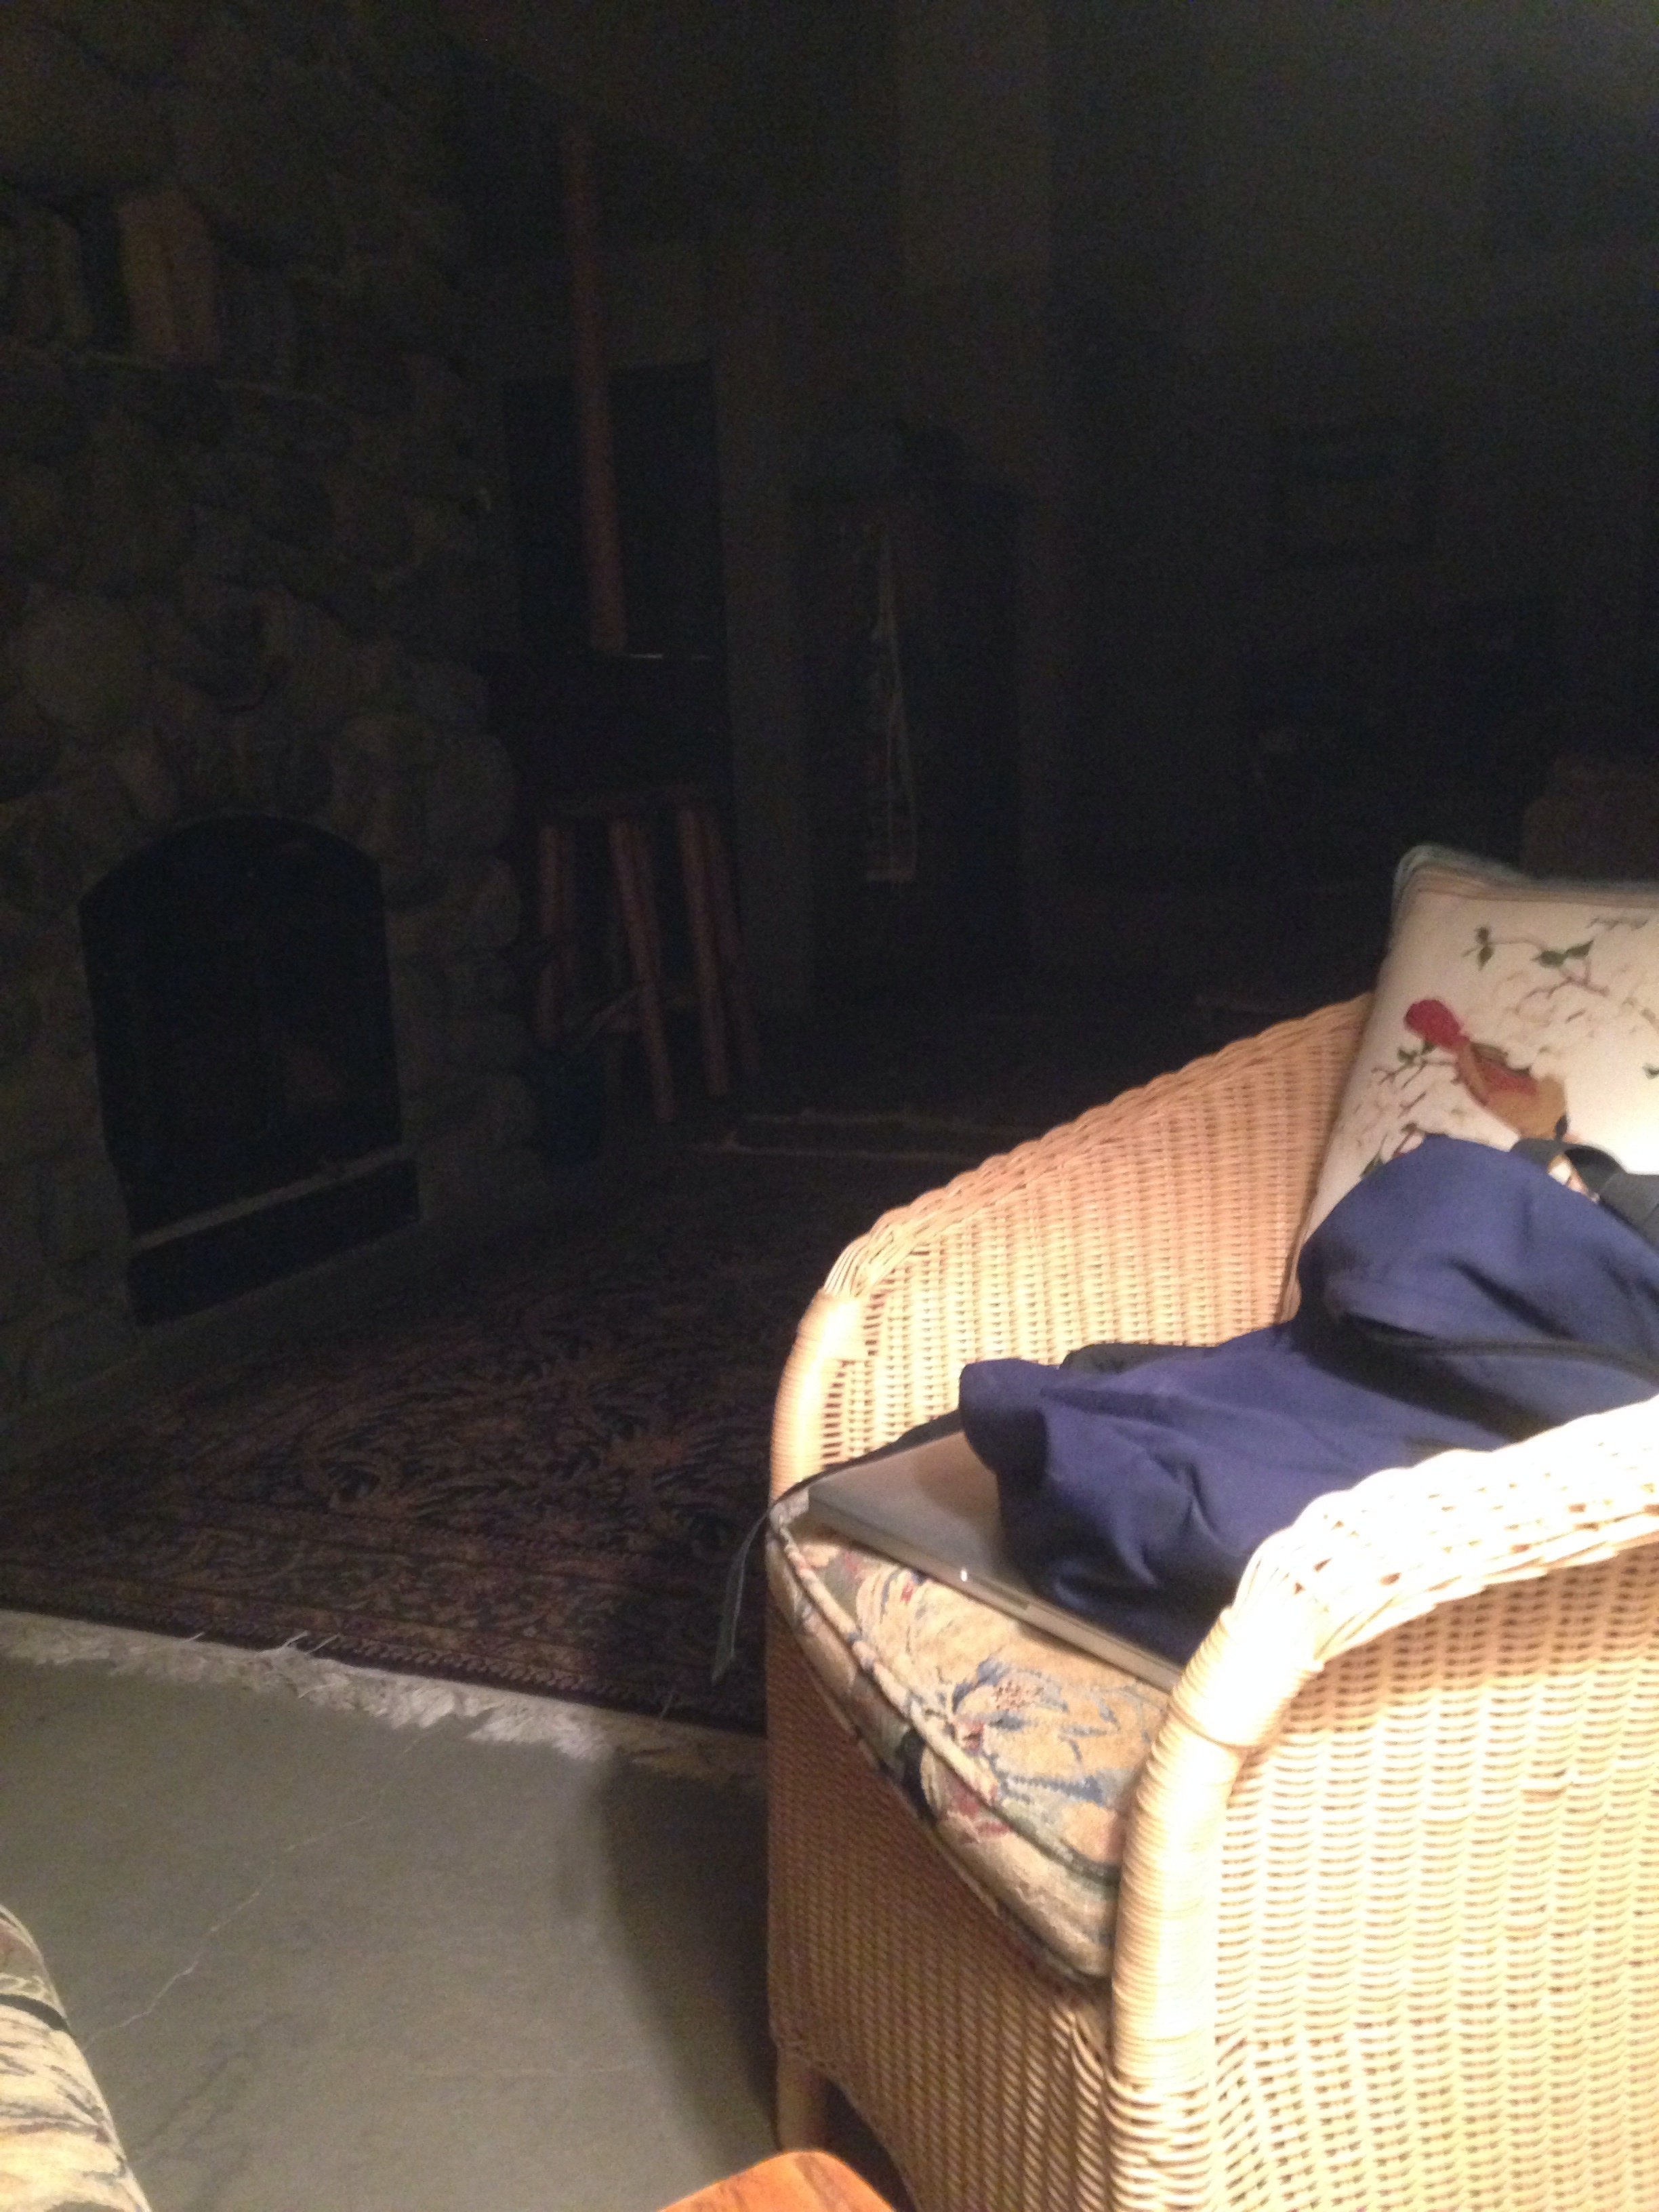 Chair in cabin, 2 a.m., Wapiti, Wyoming, May 4, 2017.